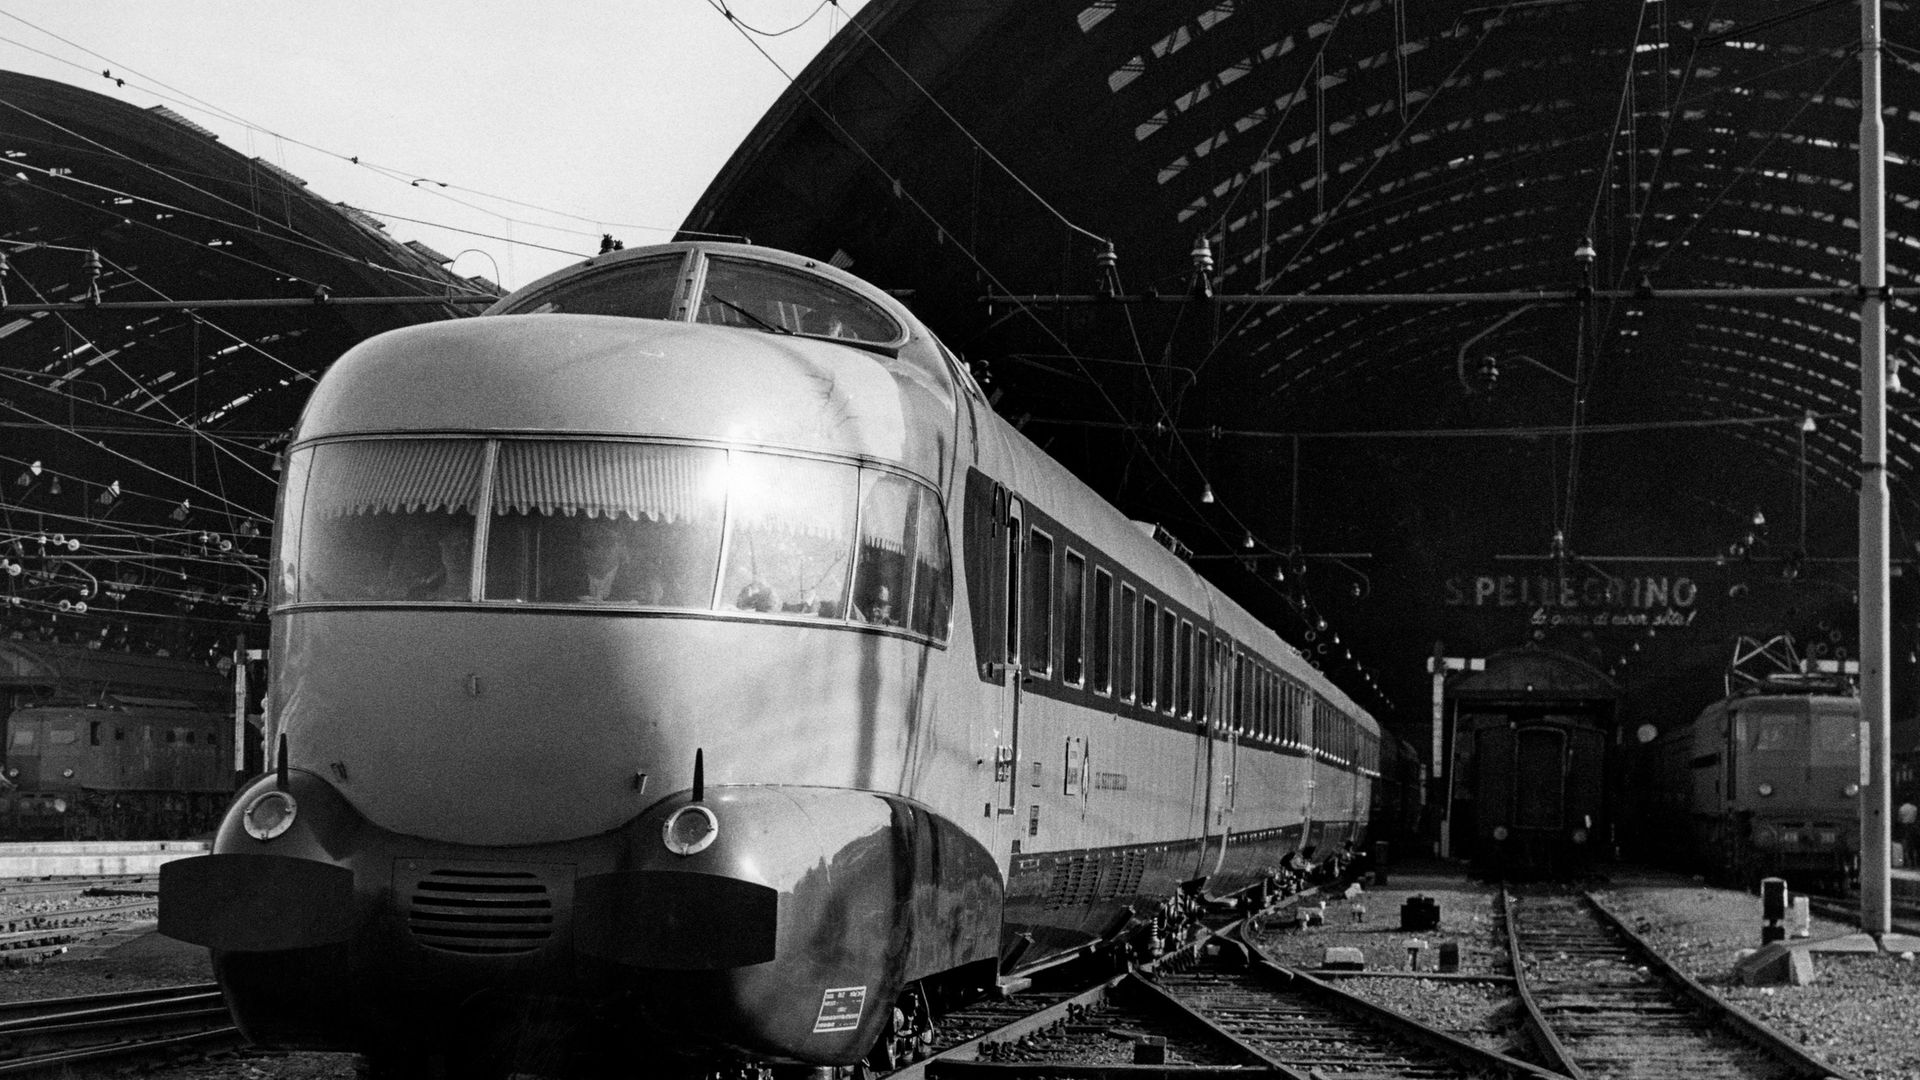 One of Italy's distinctive Settebello services – complete with observation lounge and the front – pulls out of Milan's Central Station - Credit: Touring Club Italiano/Marka/Univ